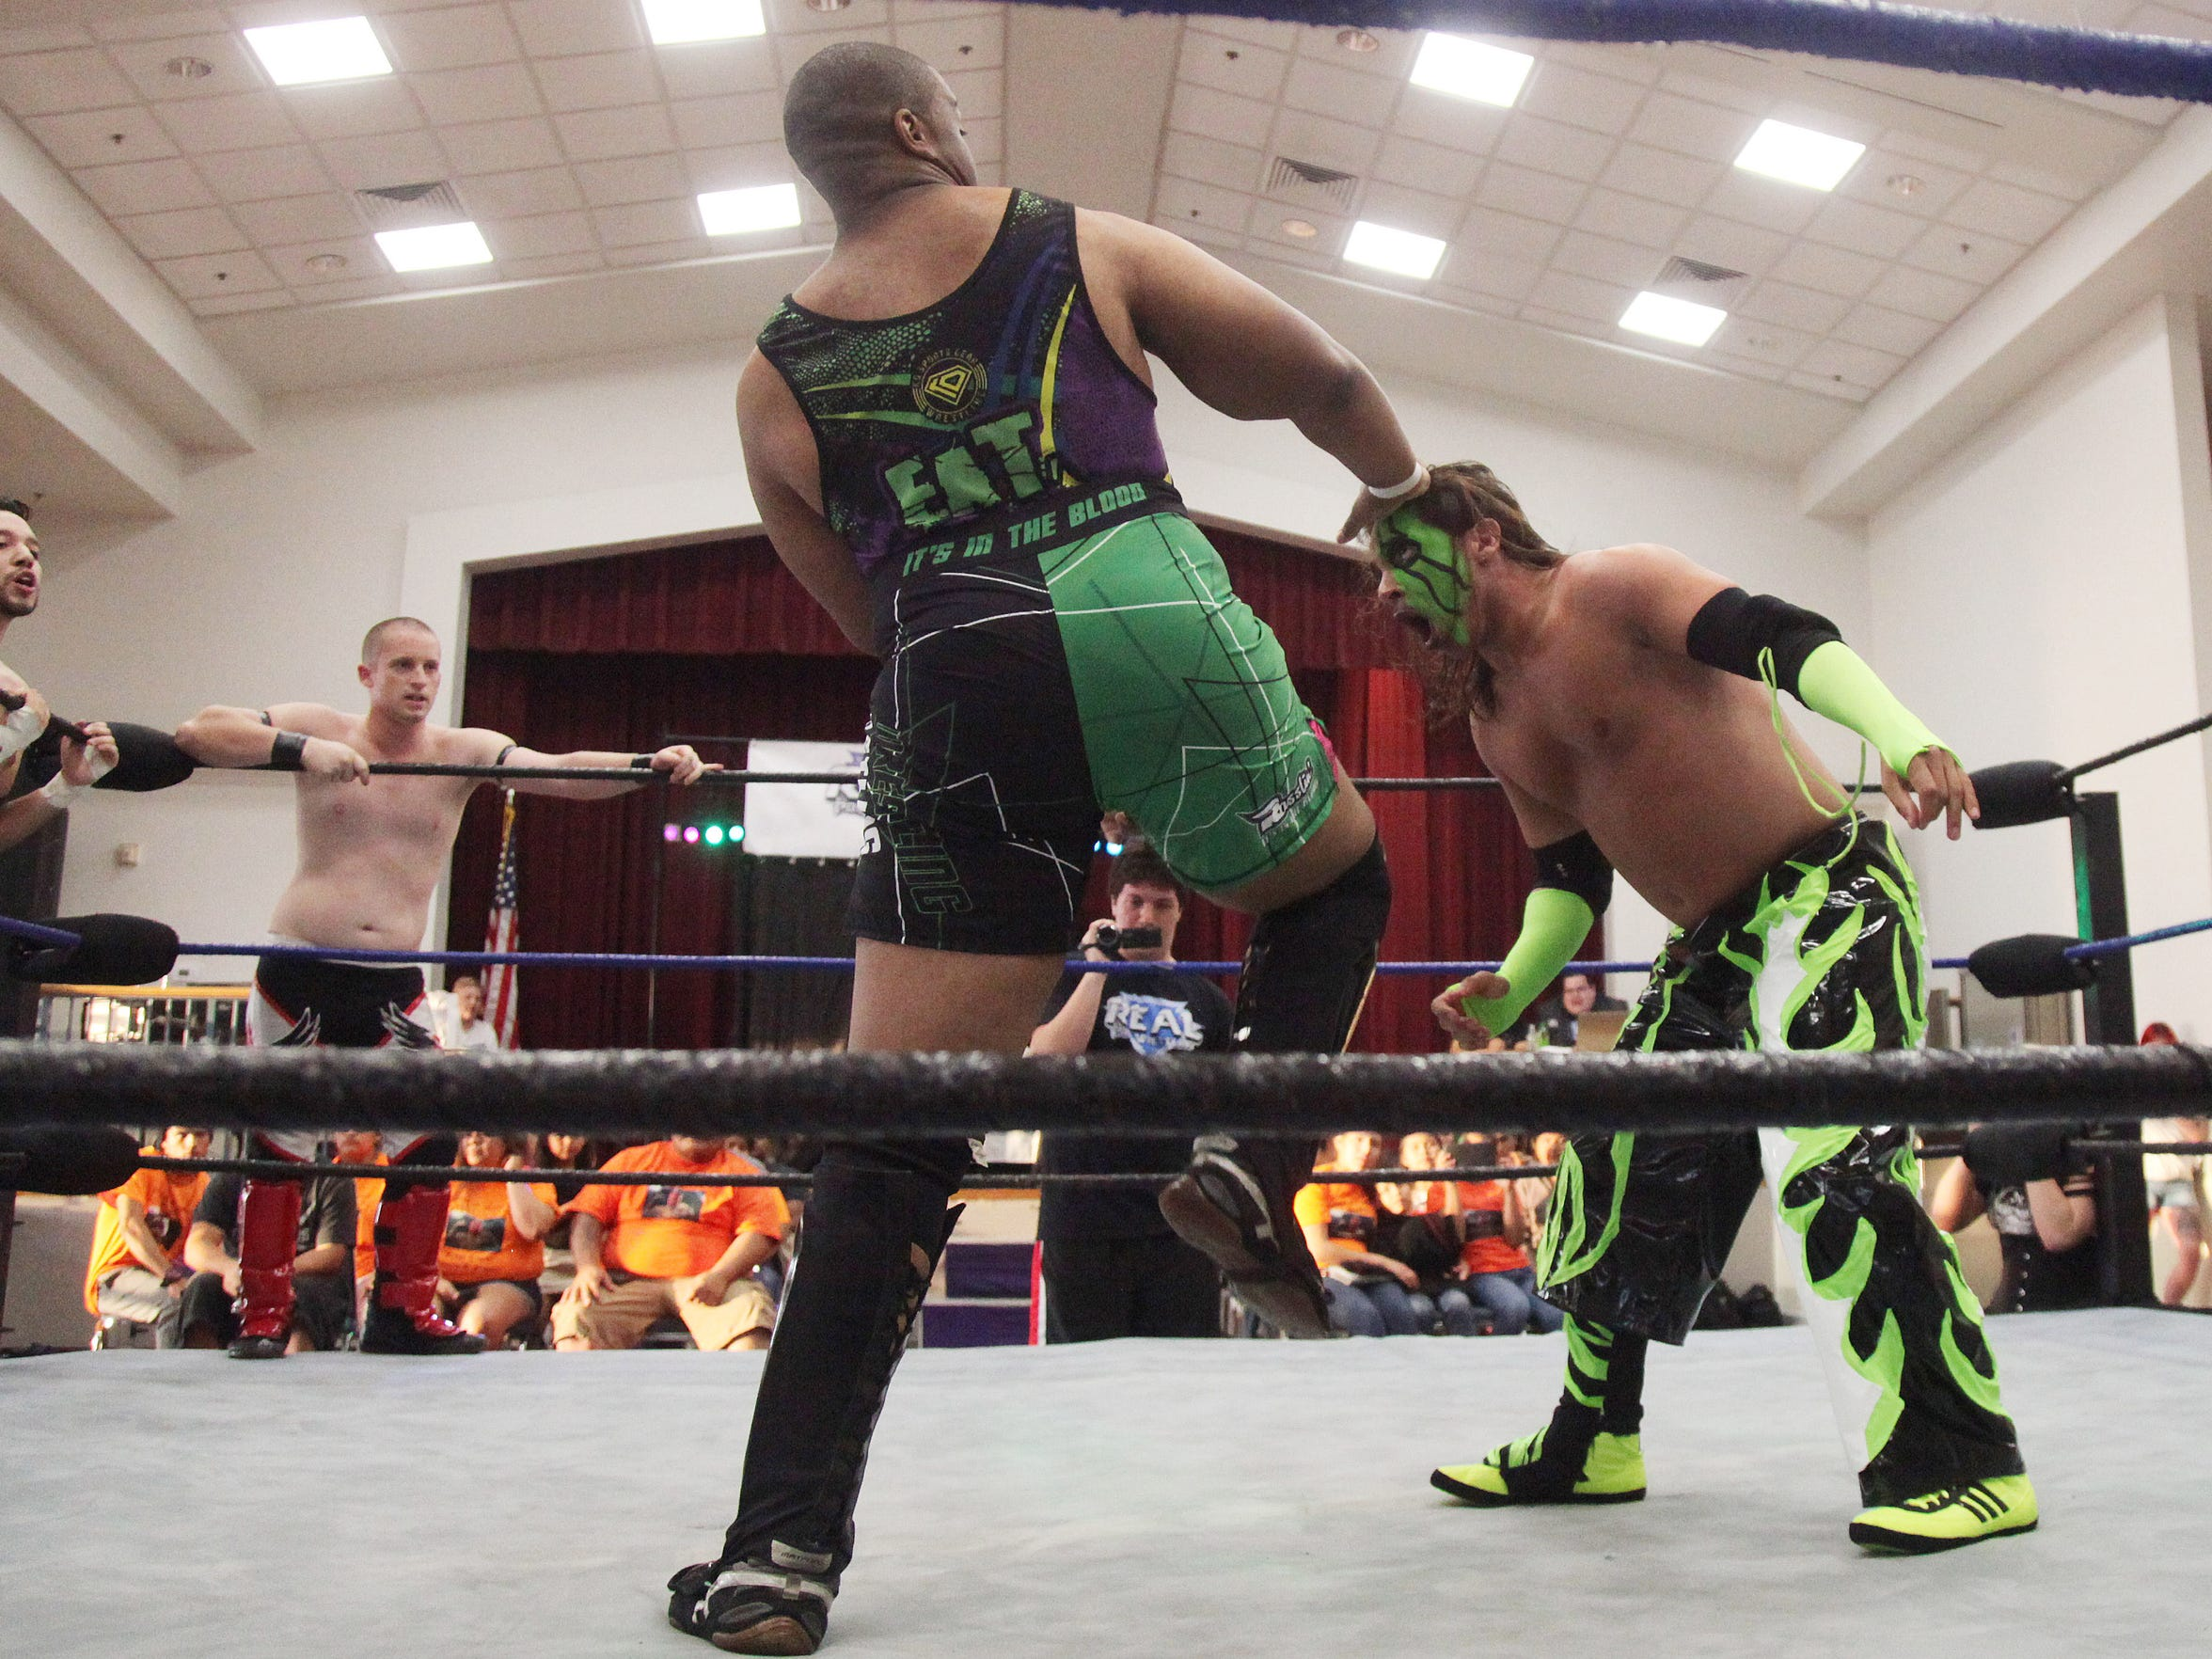 Stephen Damico, also known as Syther to his fans, competes in the ring during an event held by REAL Pro Wrestling at the Riverside Center in Fort Myers.